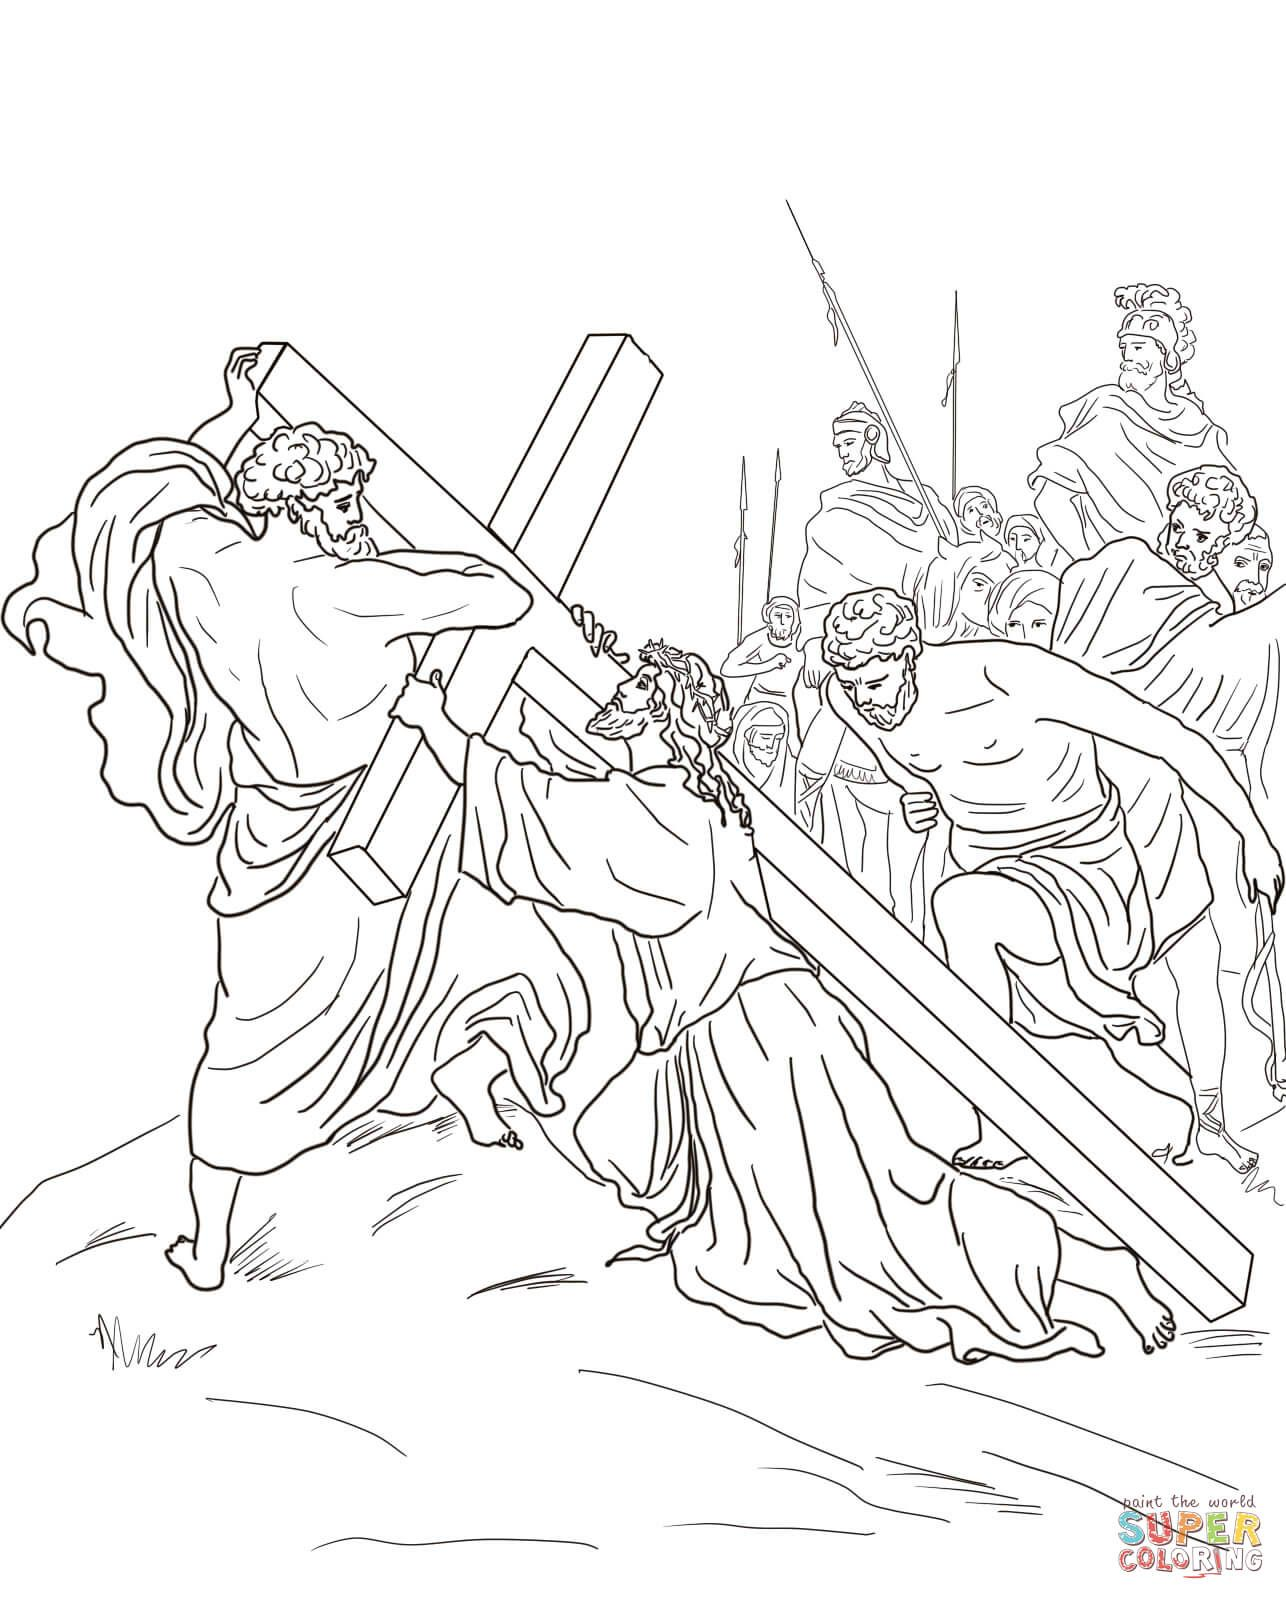 Fifth Station Jesus is Helped to Carry His Cross